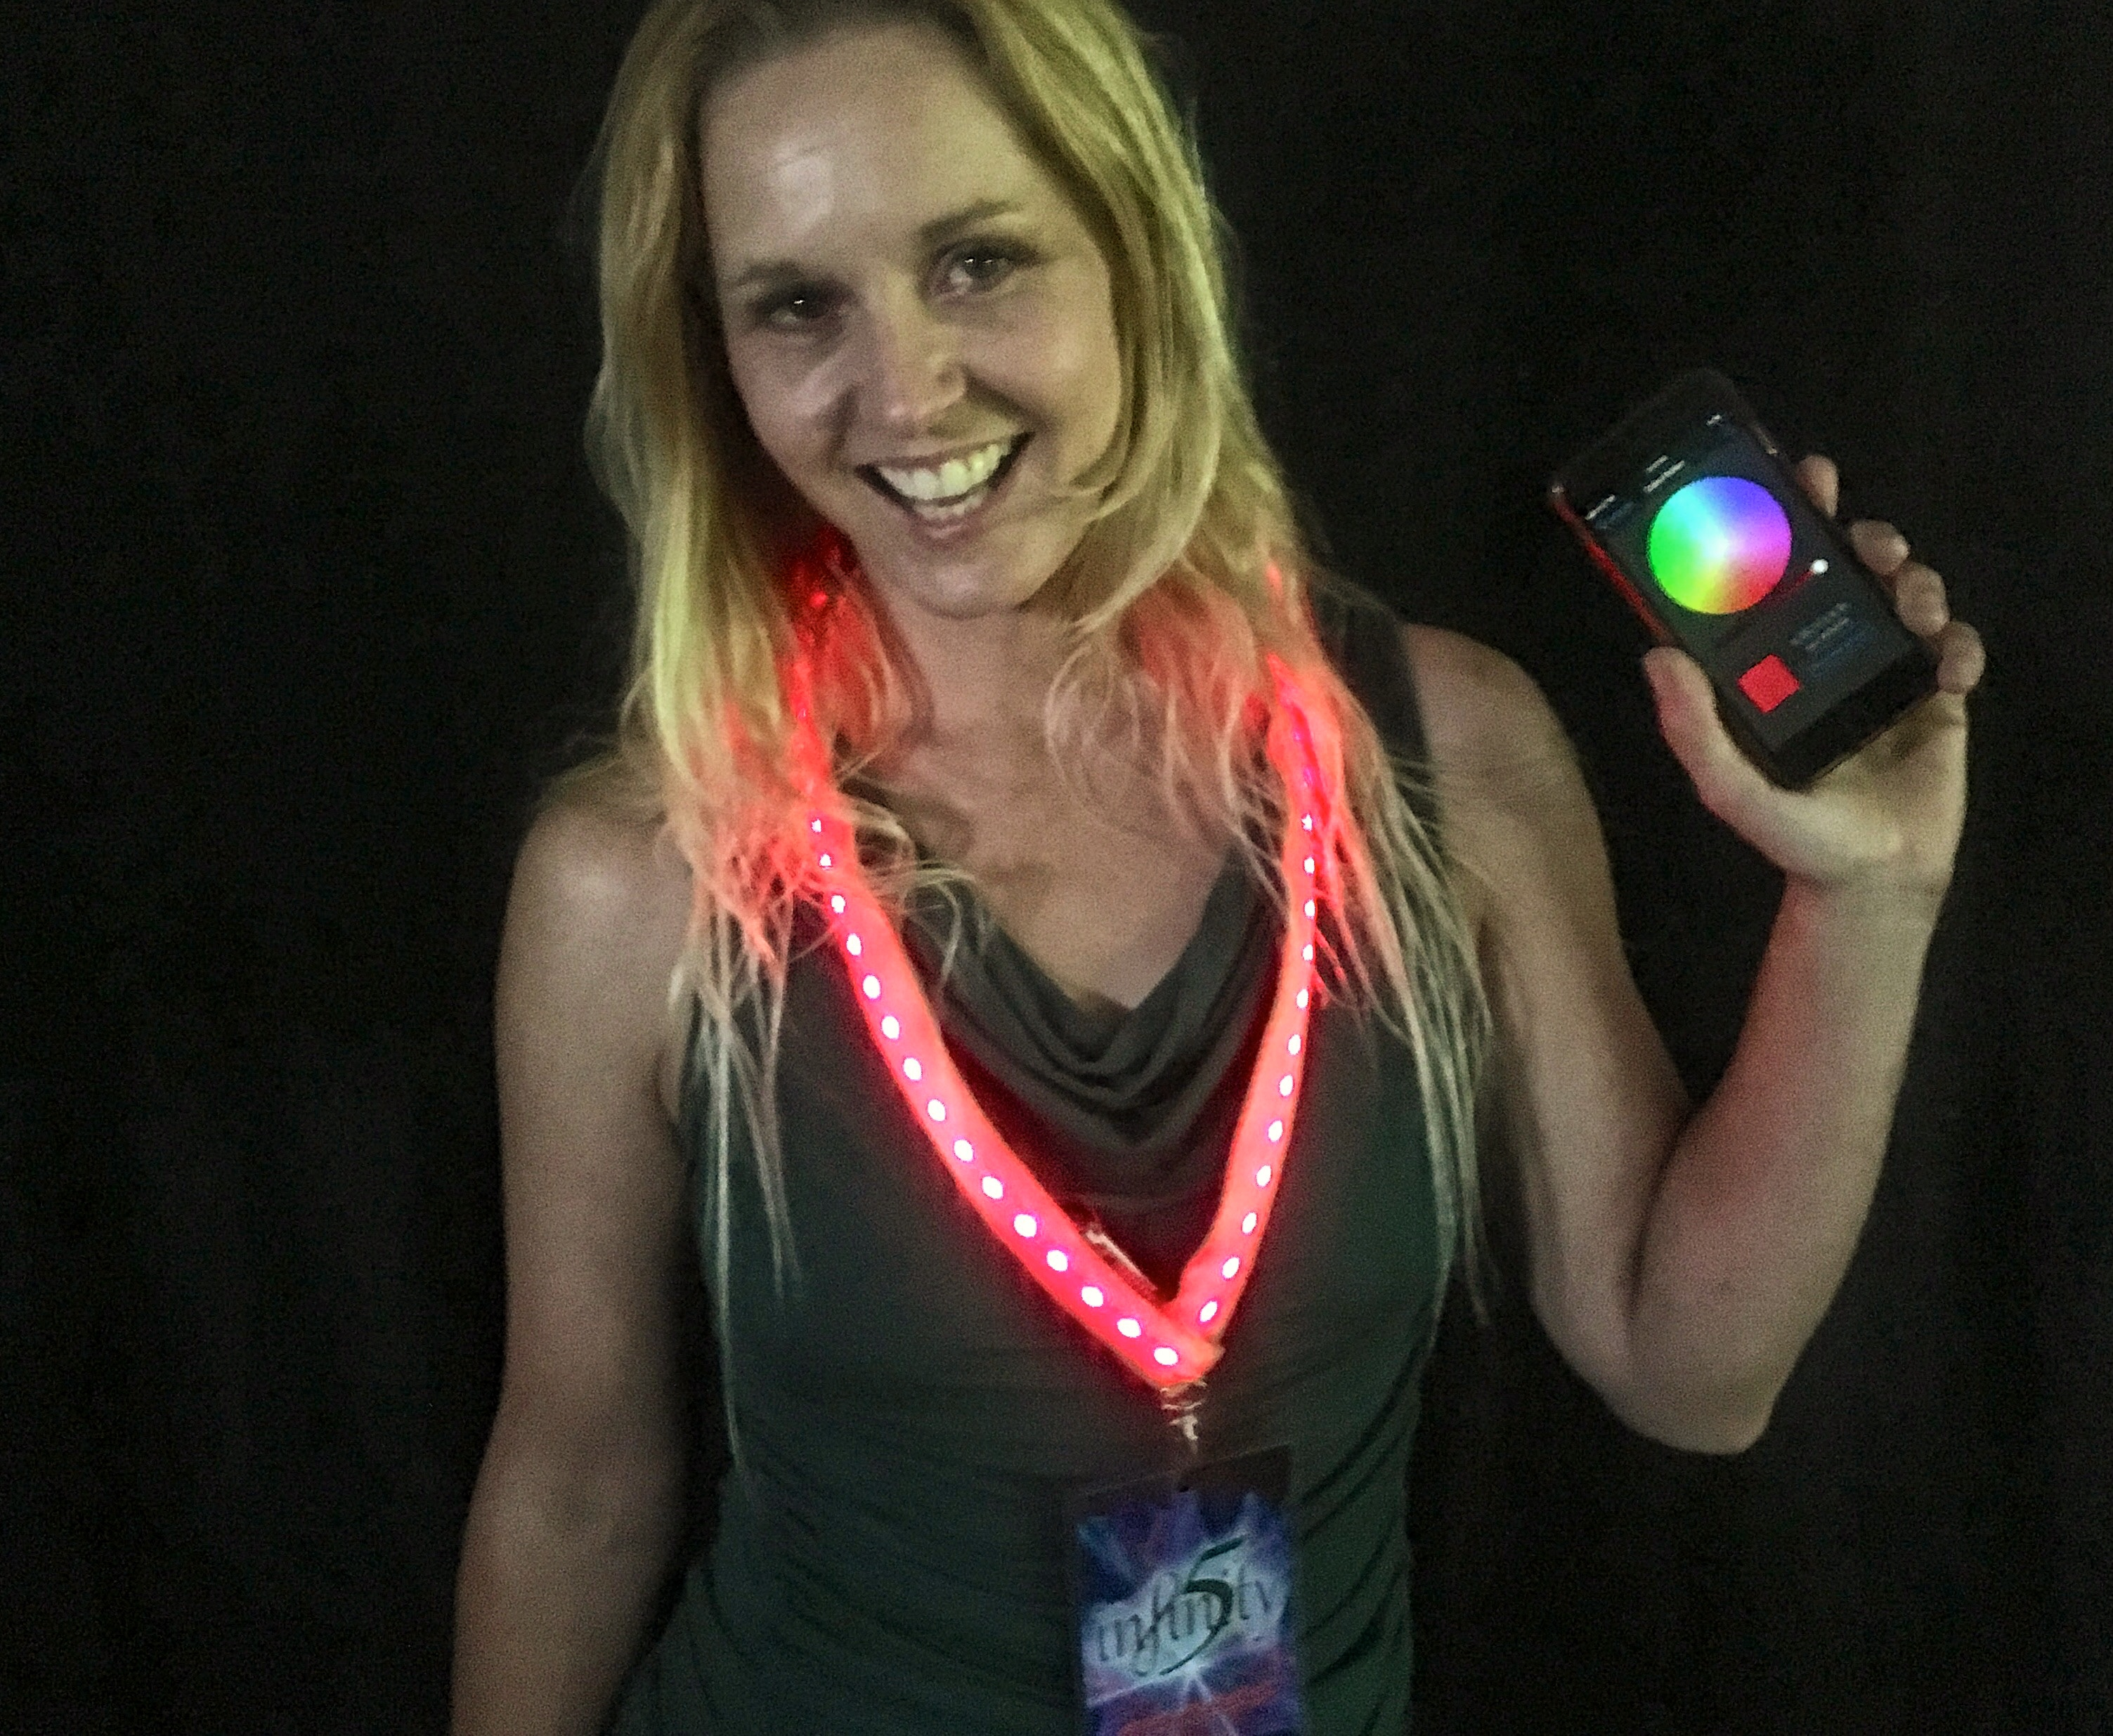 wearables_led_lanyard2.jpg